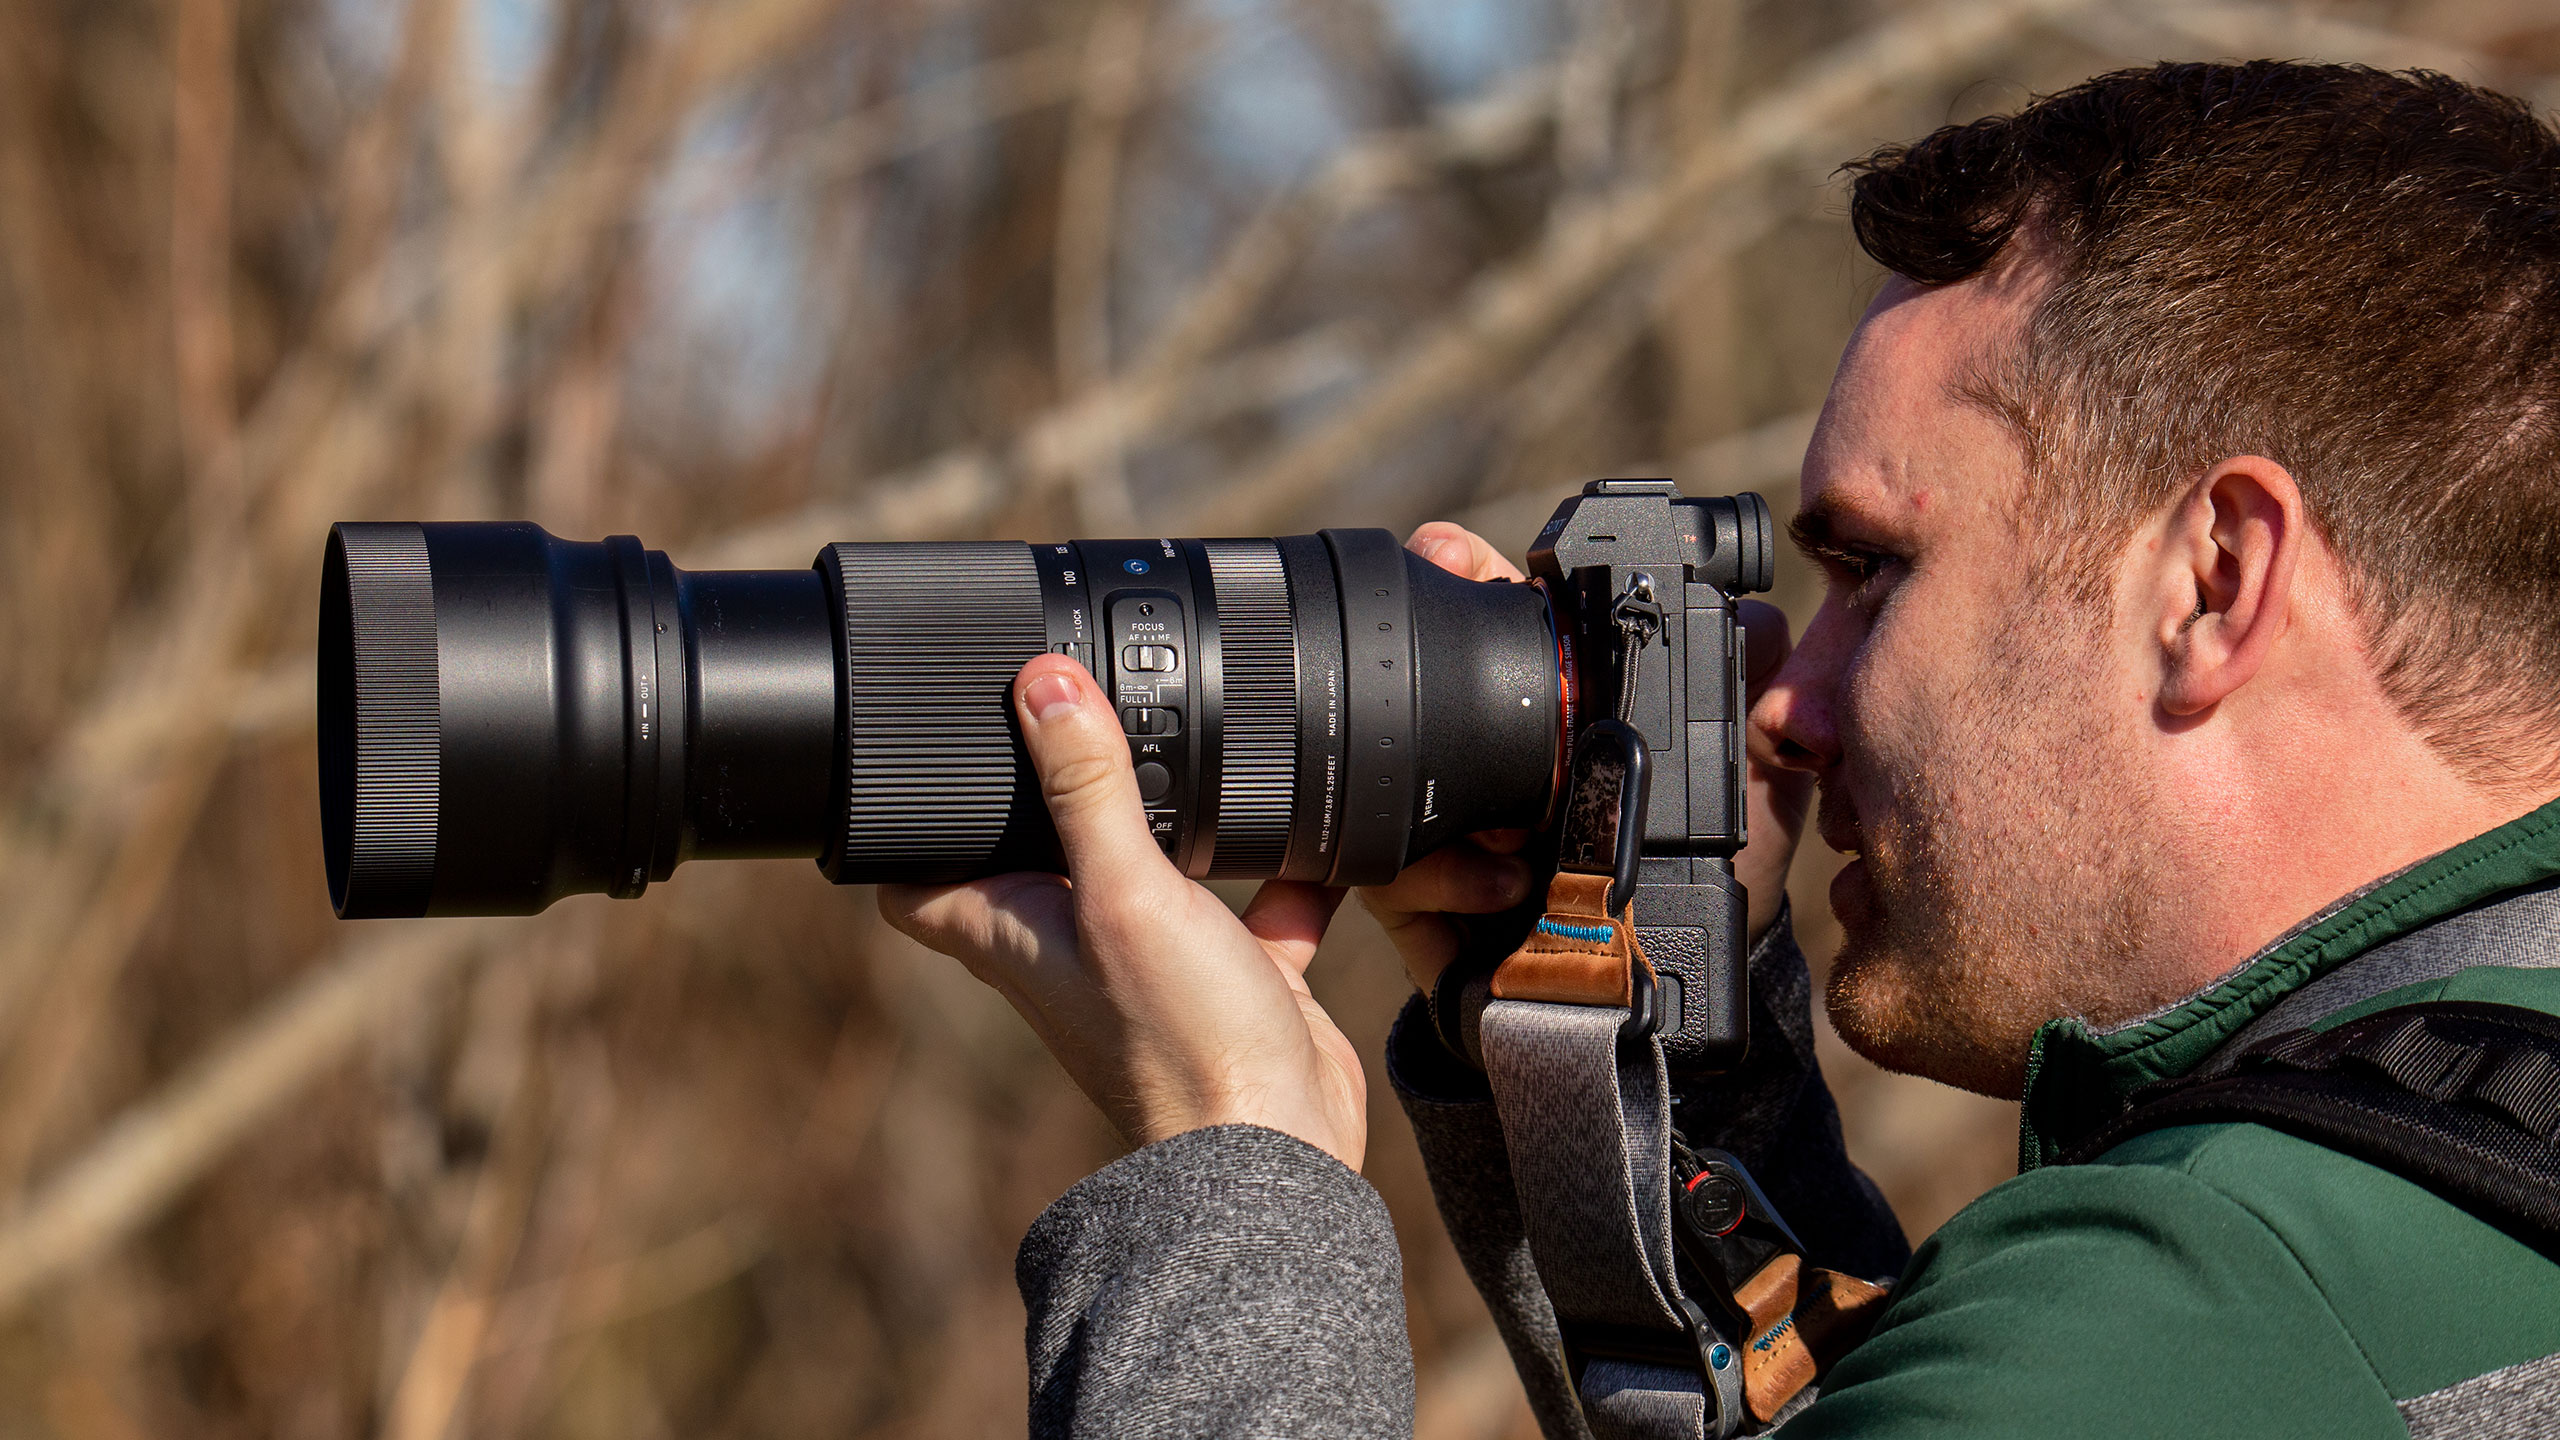 These super-telephoto zooms make birding easier than ever